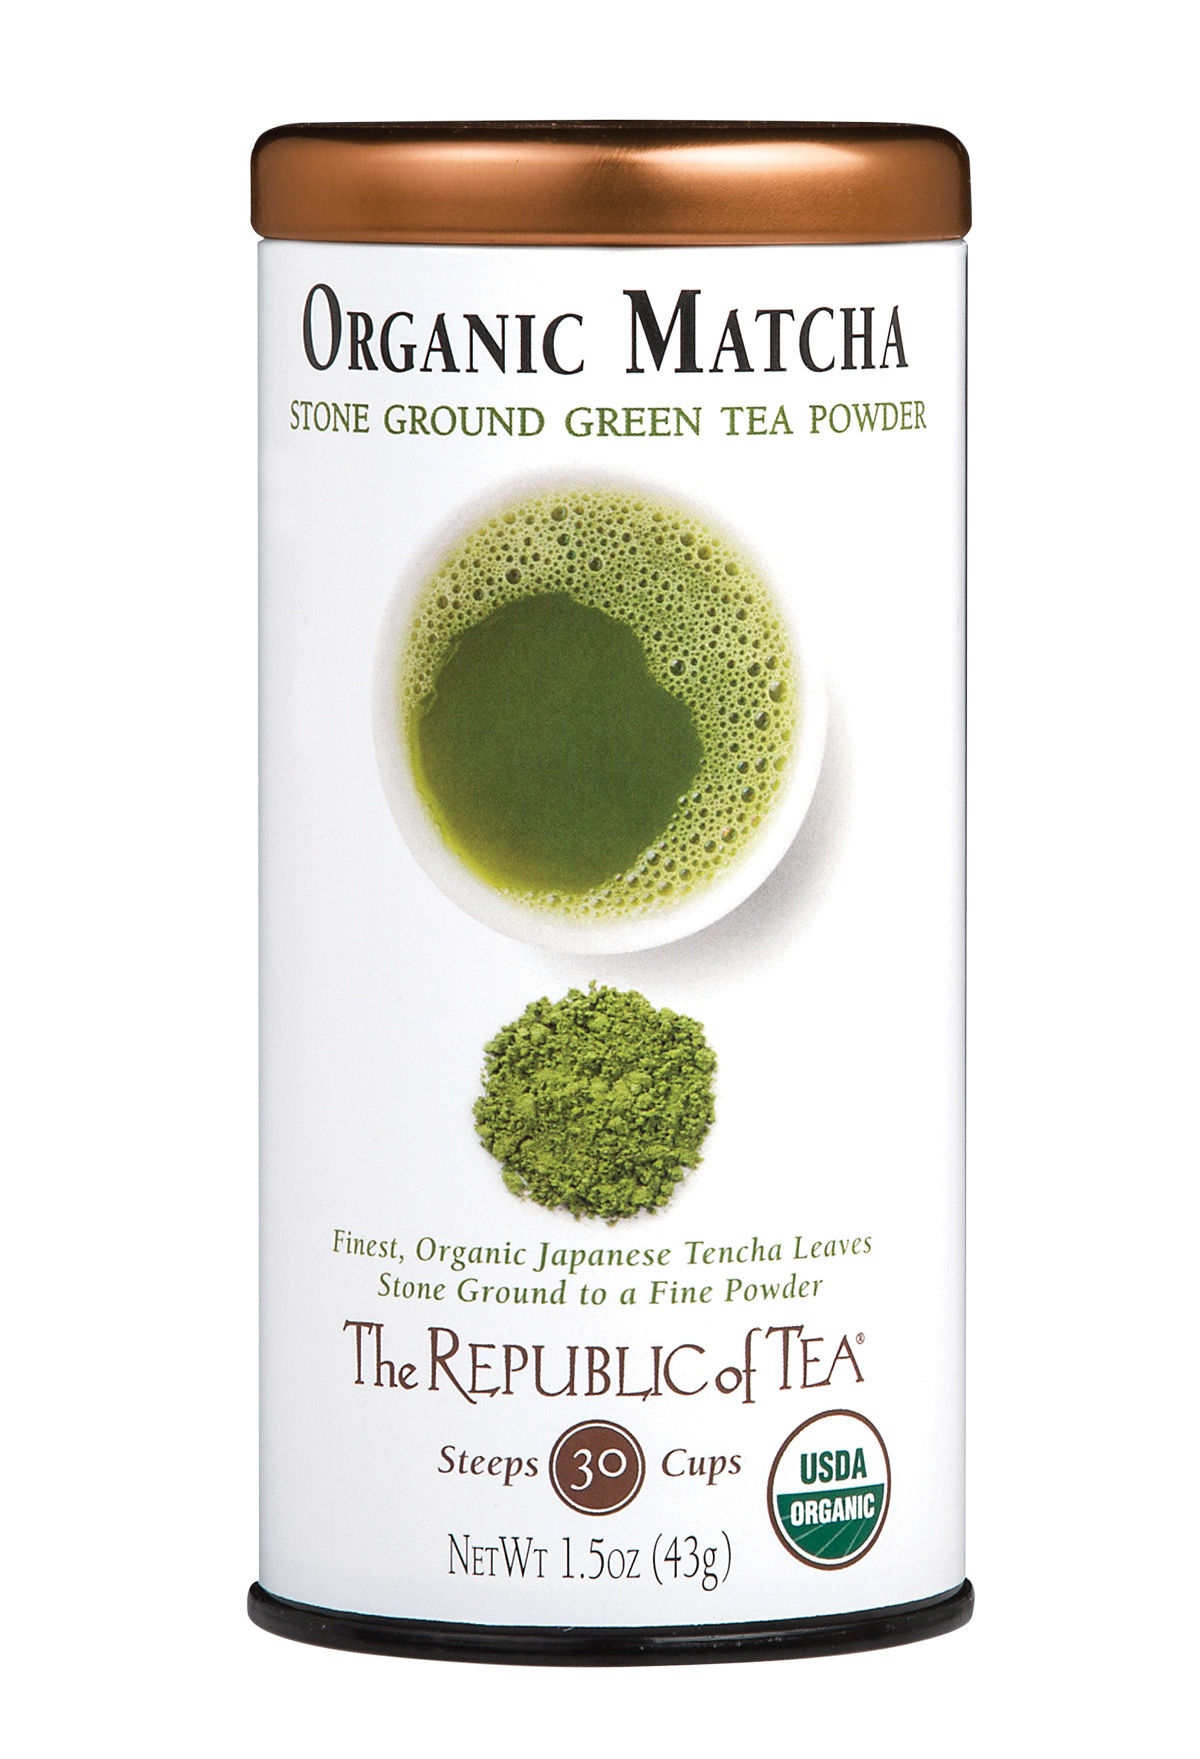 Matcha. contact jackie_fields@peoplemag.com for usage.